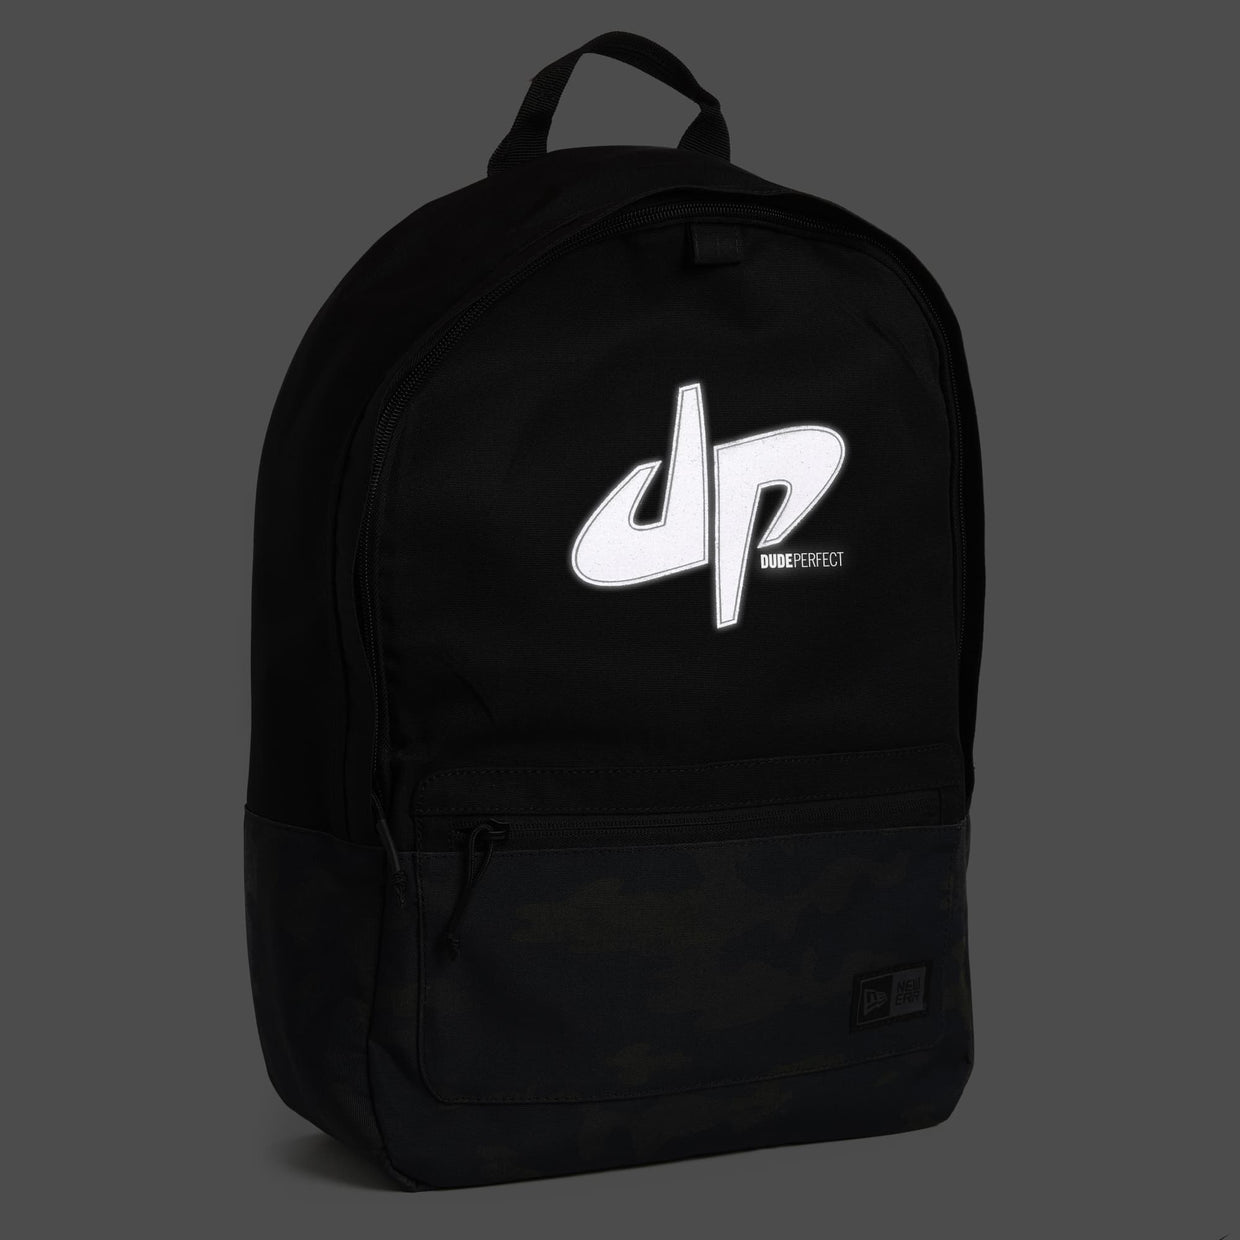 Dude Perfect x New Era Reflective Backpack 4